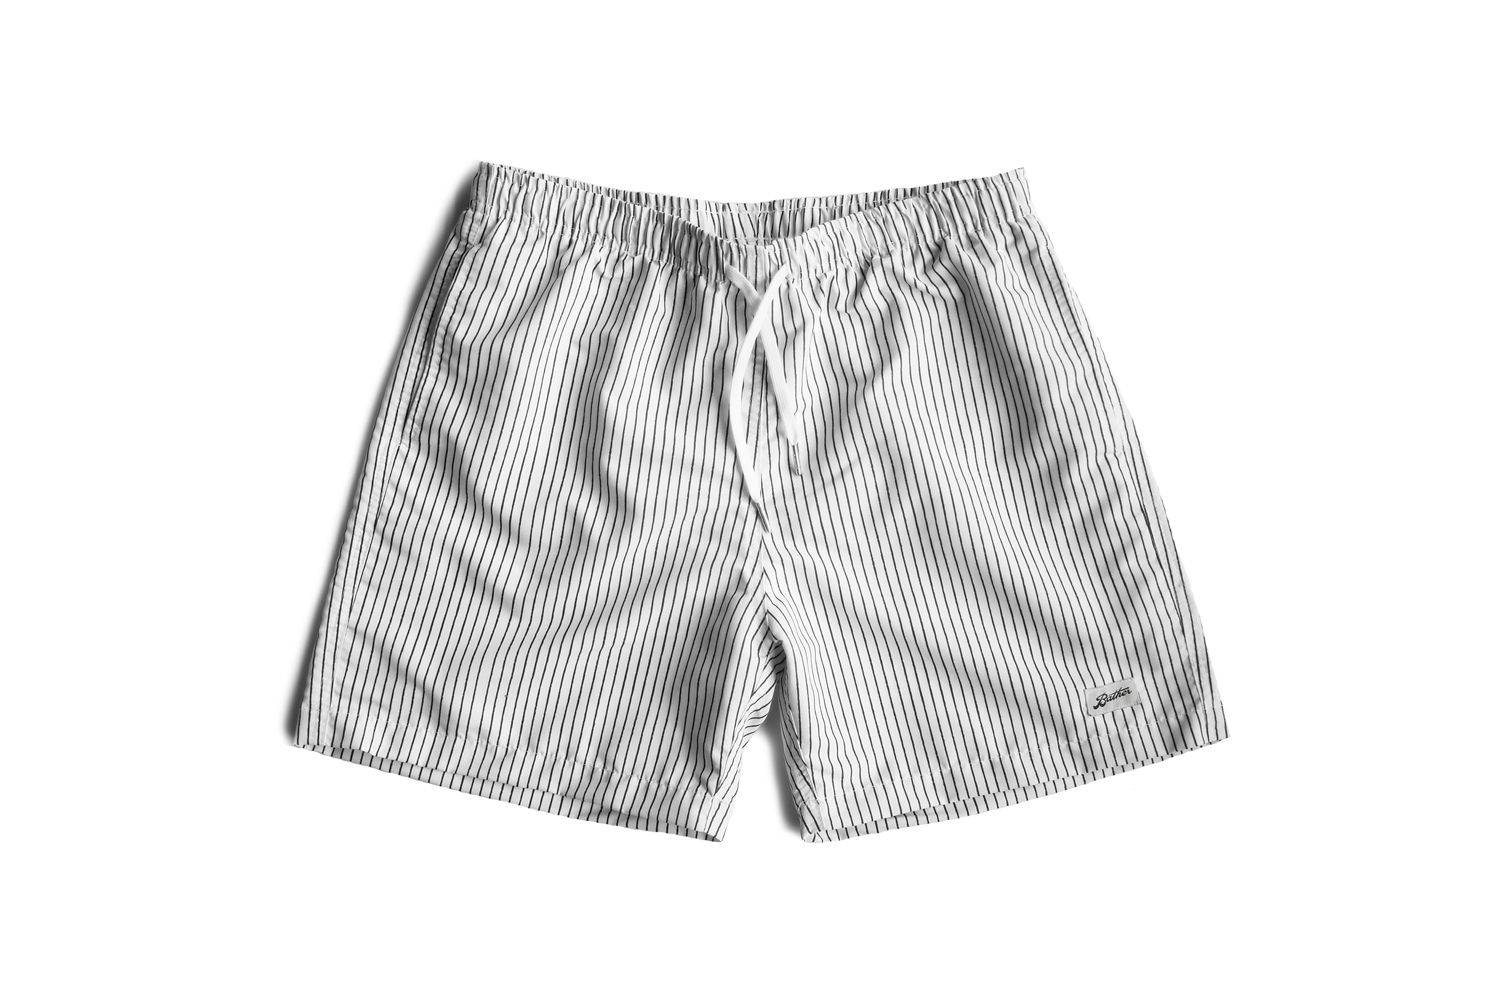 cb4b97228bb00 White Pin Stripe Swim Trunk by Bather | Products | Mens fashion ...